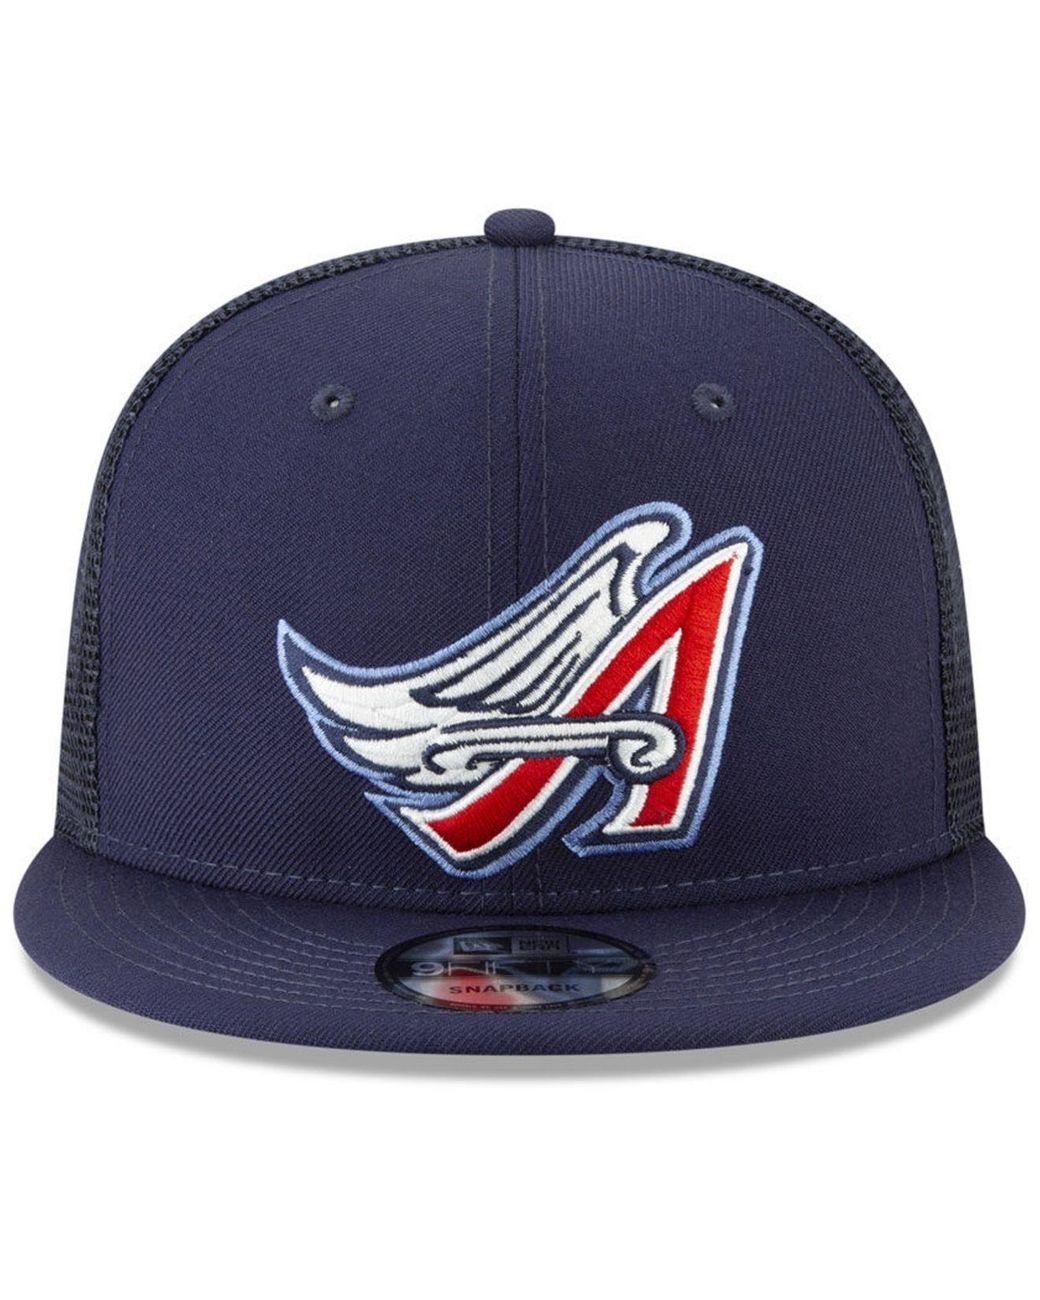 los angeles 2d31a 6b1dc KTZ Los Angeles Angels Coop All Day Mesh Back 9fifty Snapback Cap in Blue  for Men - Lyst